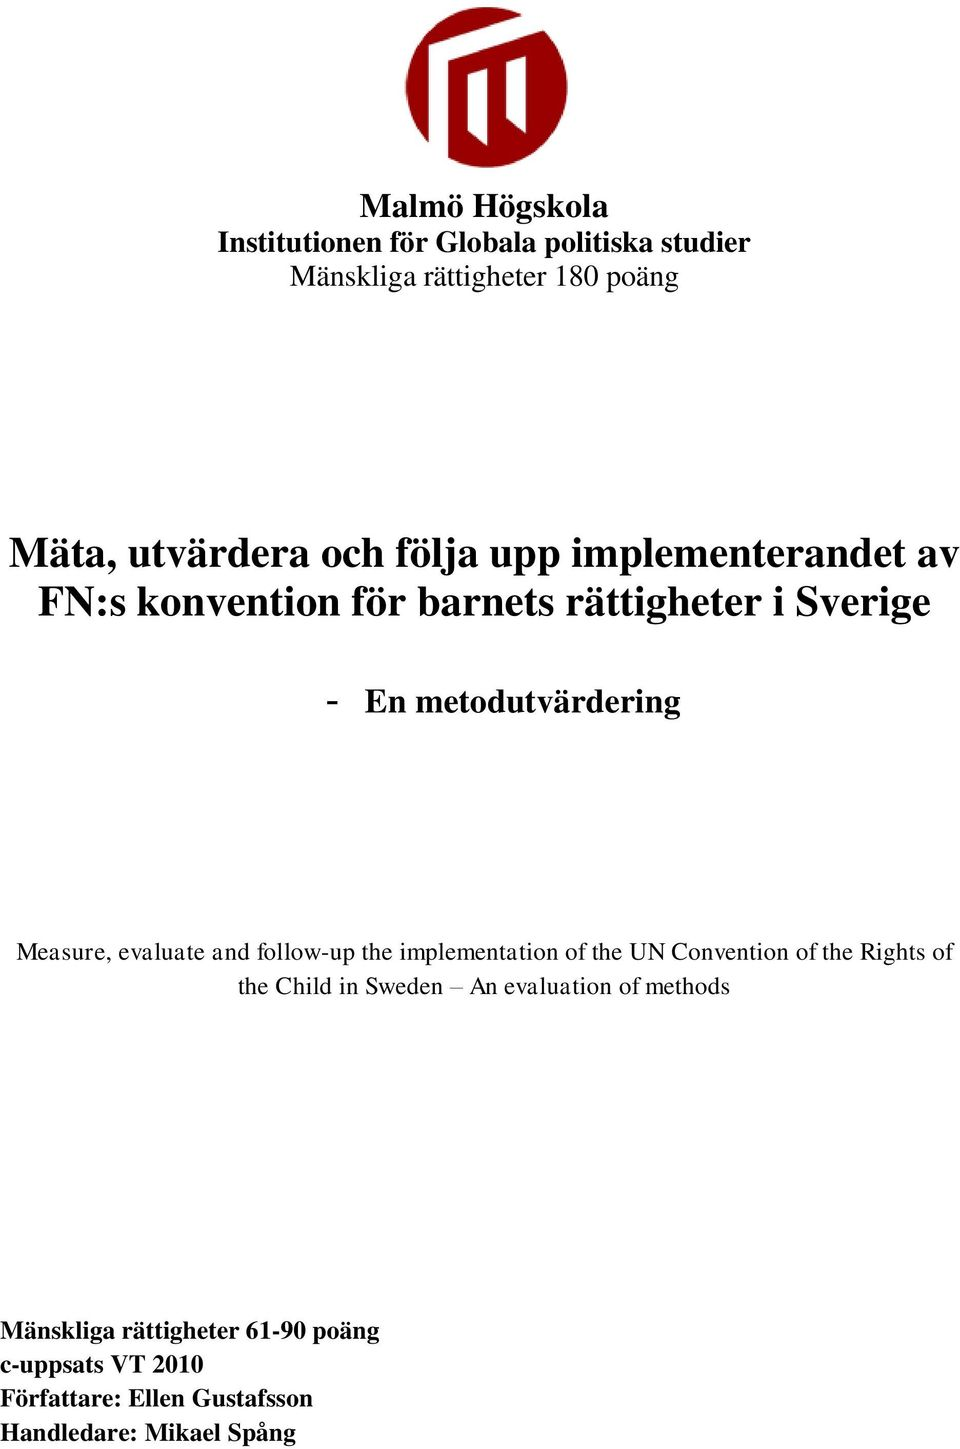 evaluate and follow-up the implementation of the UN Convention of the Rights of the Child in Sweden An